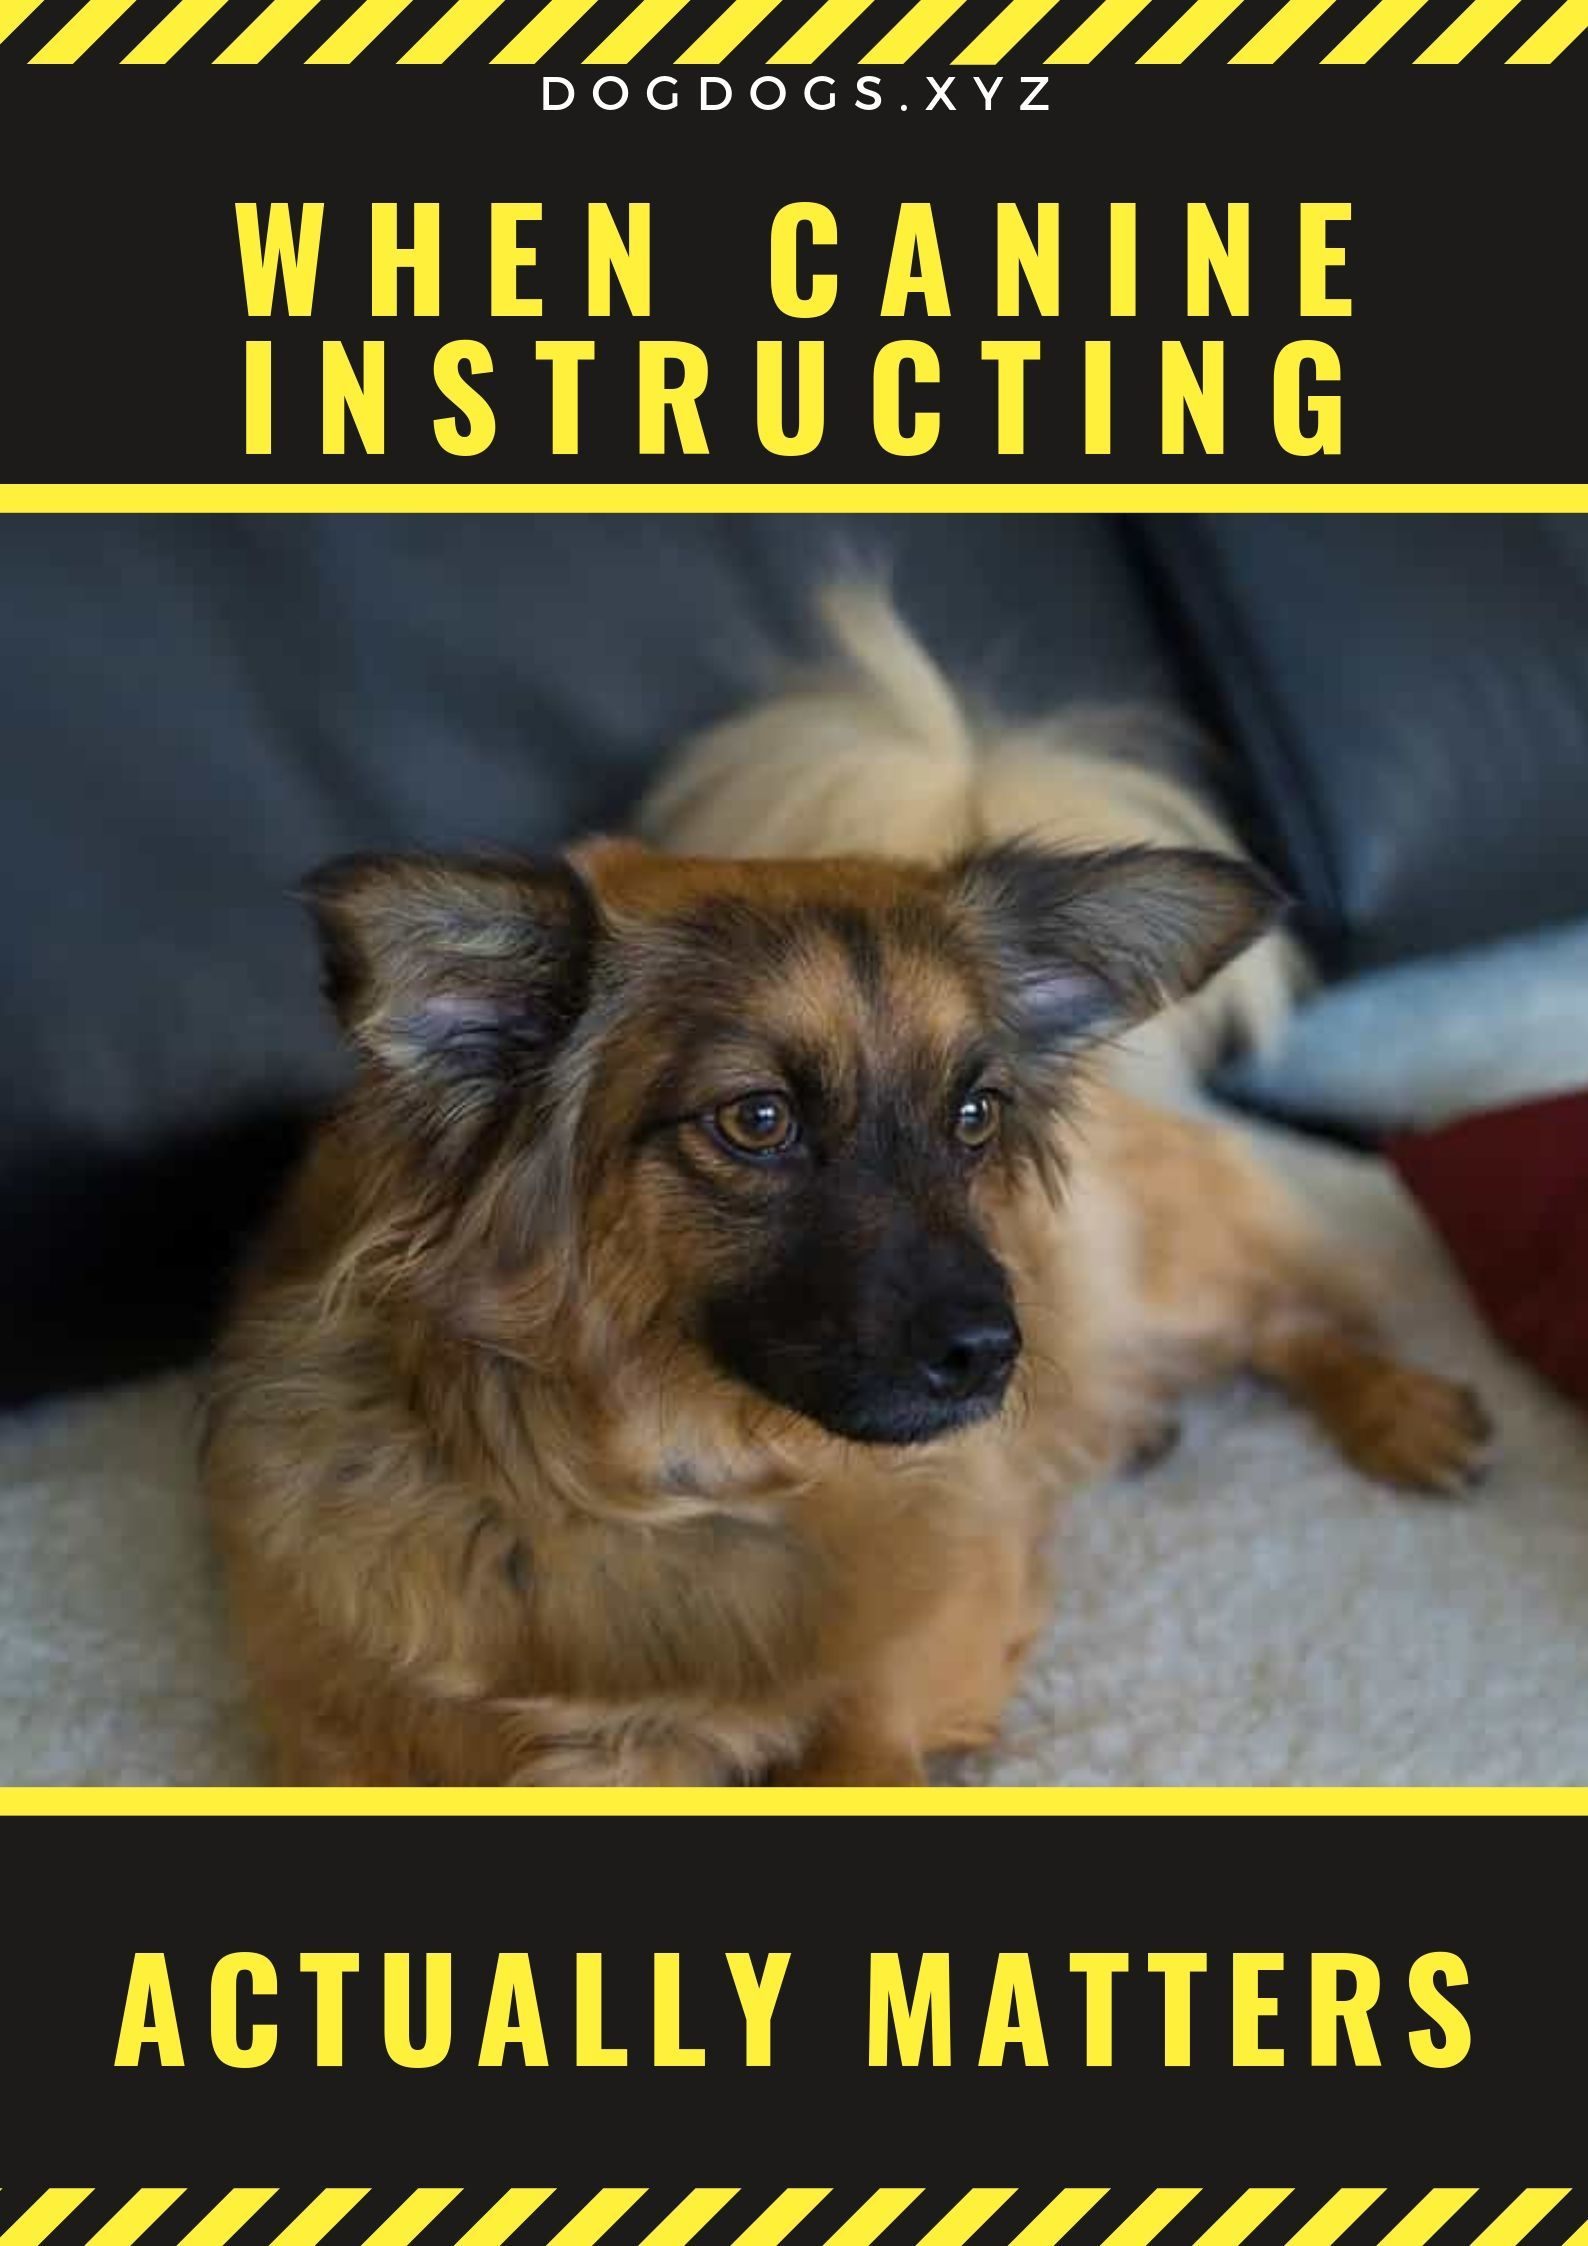 When Canine Instructing Actually Matters Dog Training Dogs